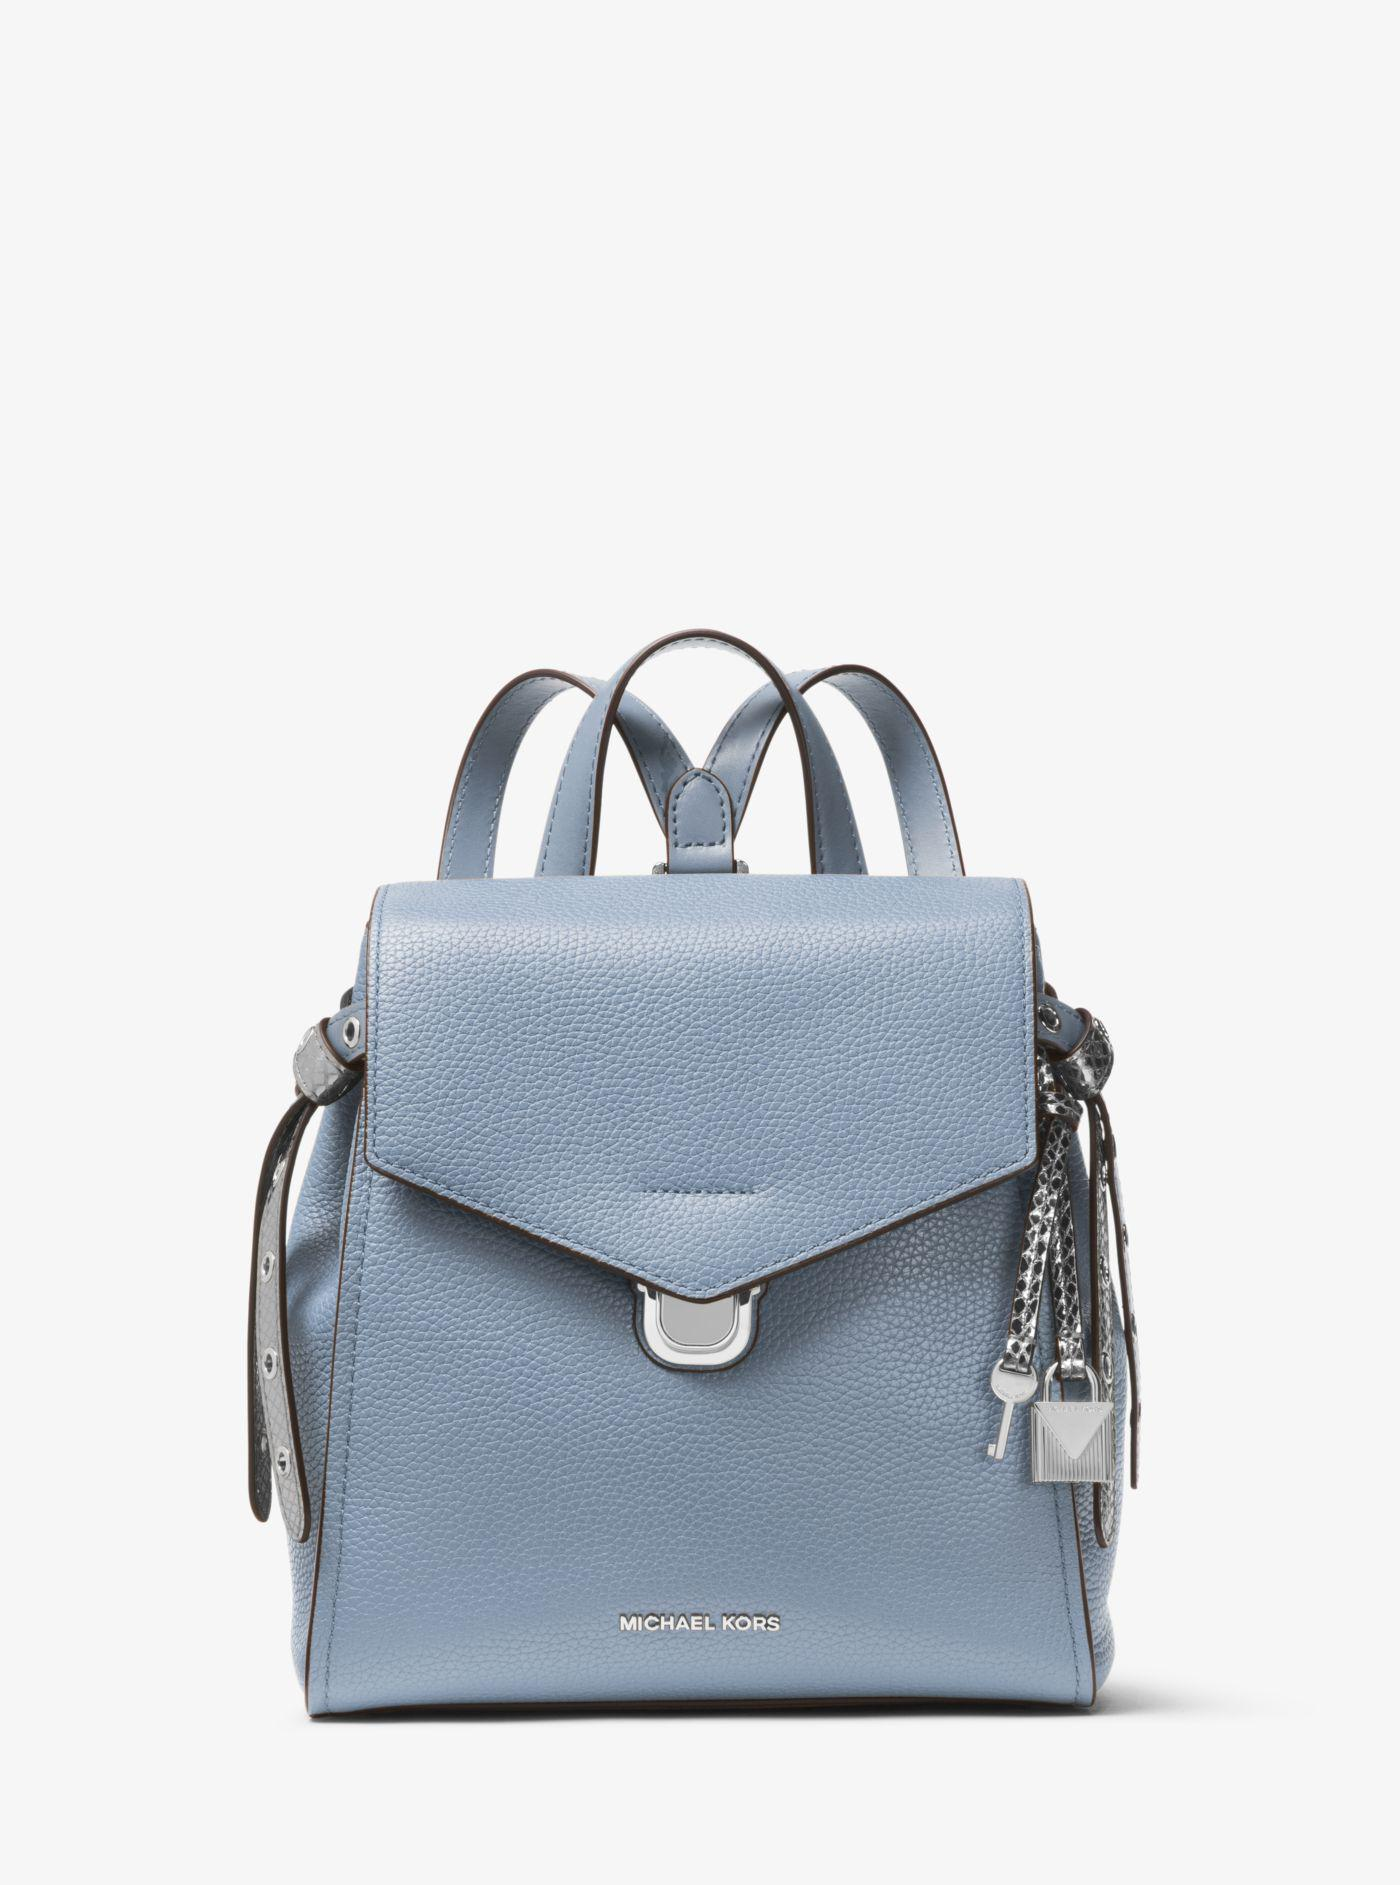 80f3857f4d645a Michael Kors Bristol Small Leather Backpack in Blue - Lyst